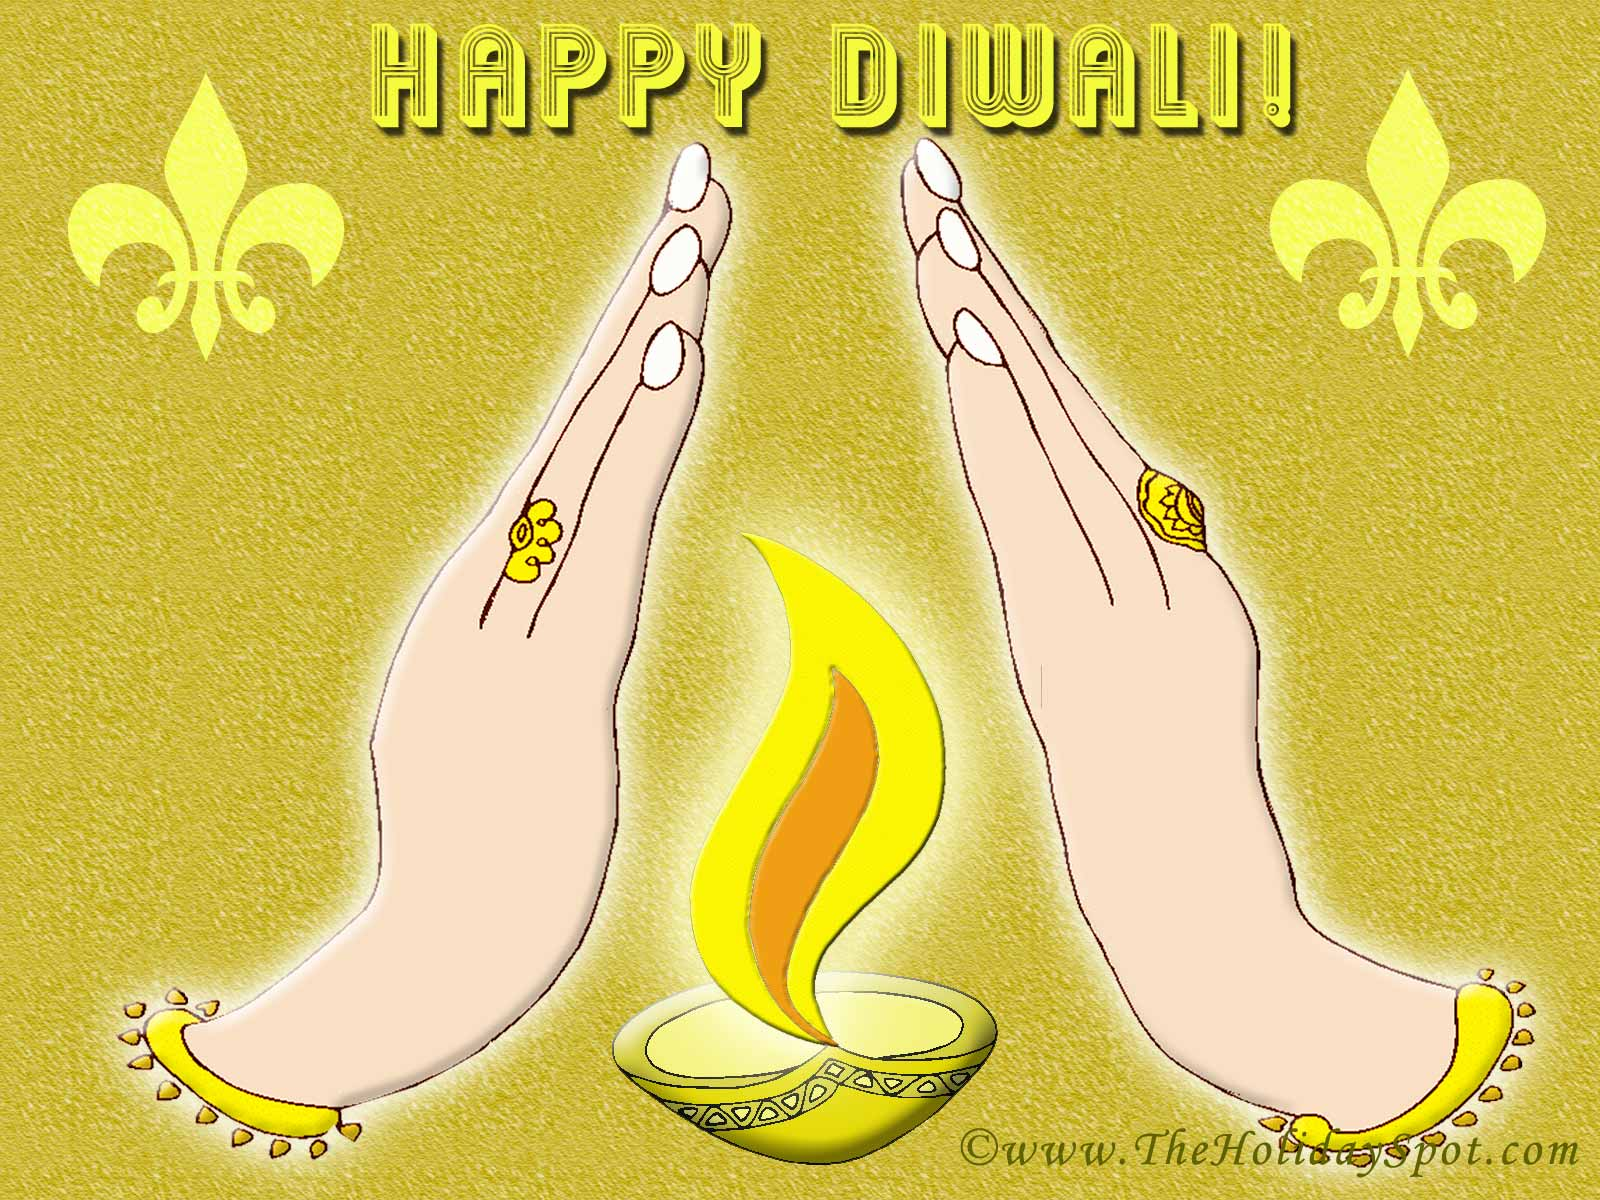 hdiwali20 45 Colorful and Cutest Diwali Wallpapers